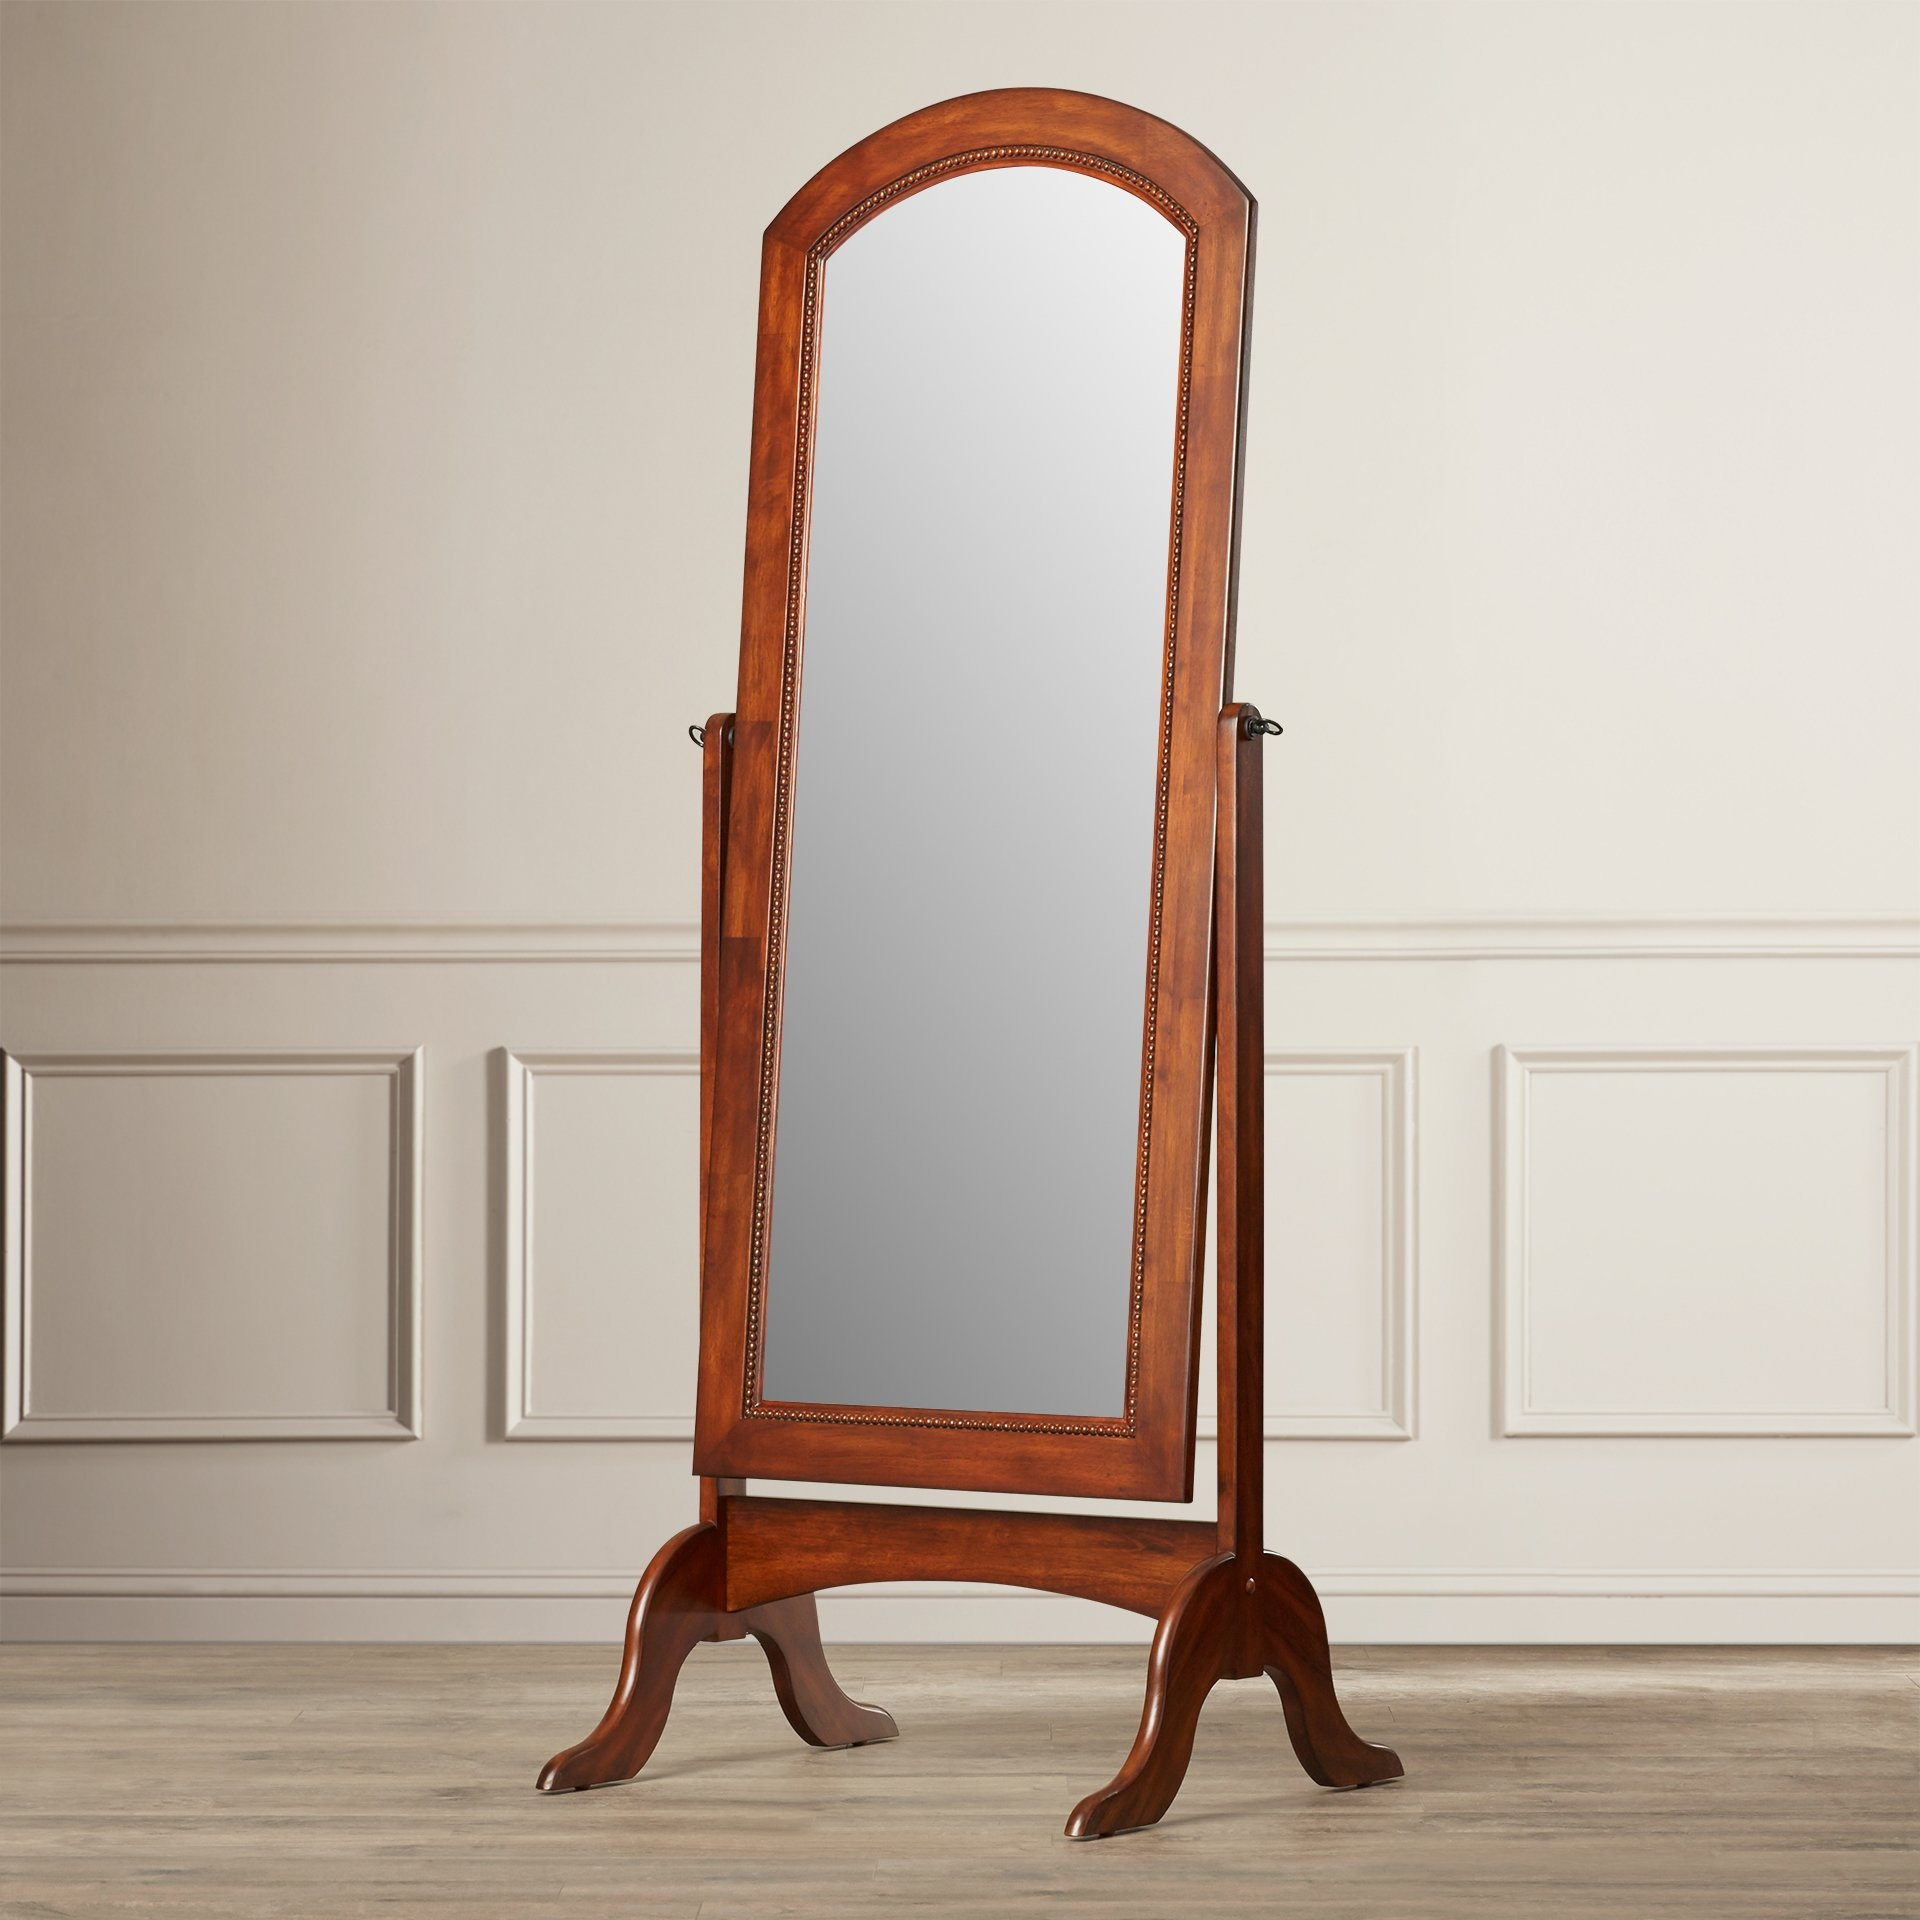 Dar Home Co Cheval Mirror Reviews Wayfair Throughout Mirror Cheval (Image 6 of 15)